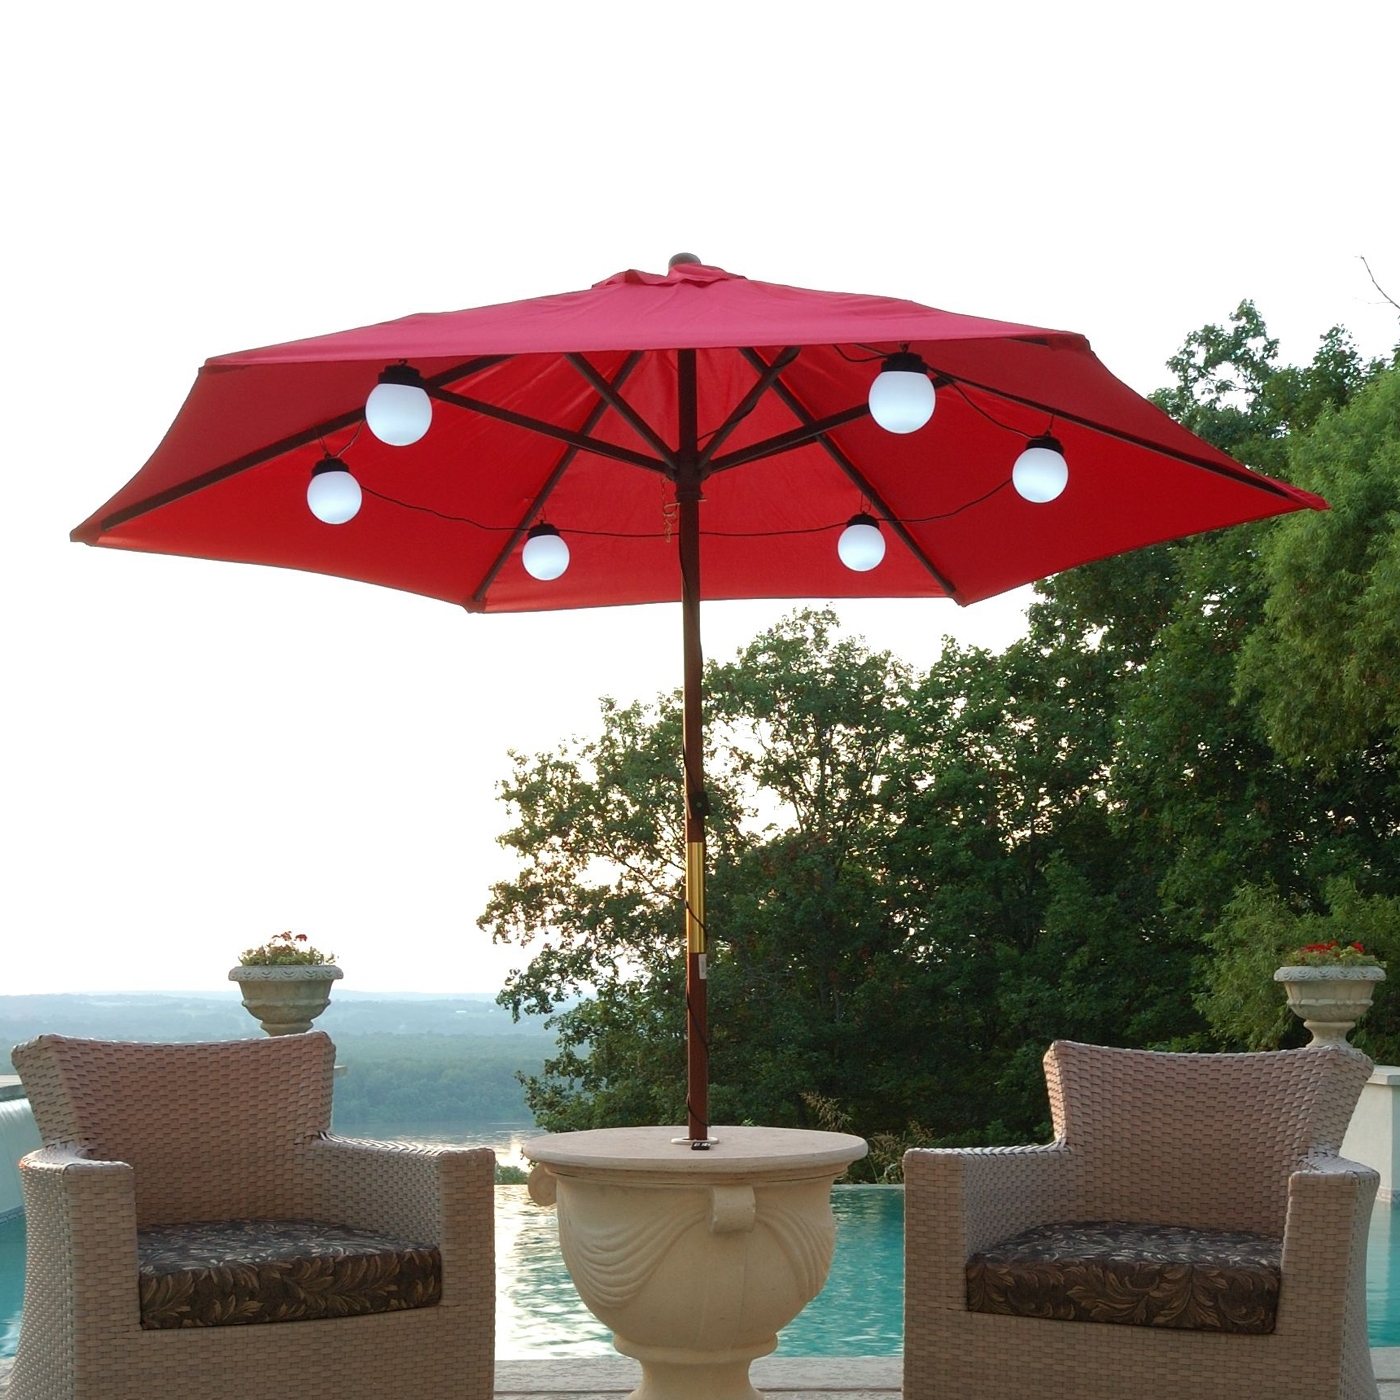 Patio Living Concepts 080 Bright White Led Solar Powered Umbrella Intended For Outdoor Umbrella Lanterns (View 11 of 20)